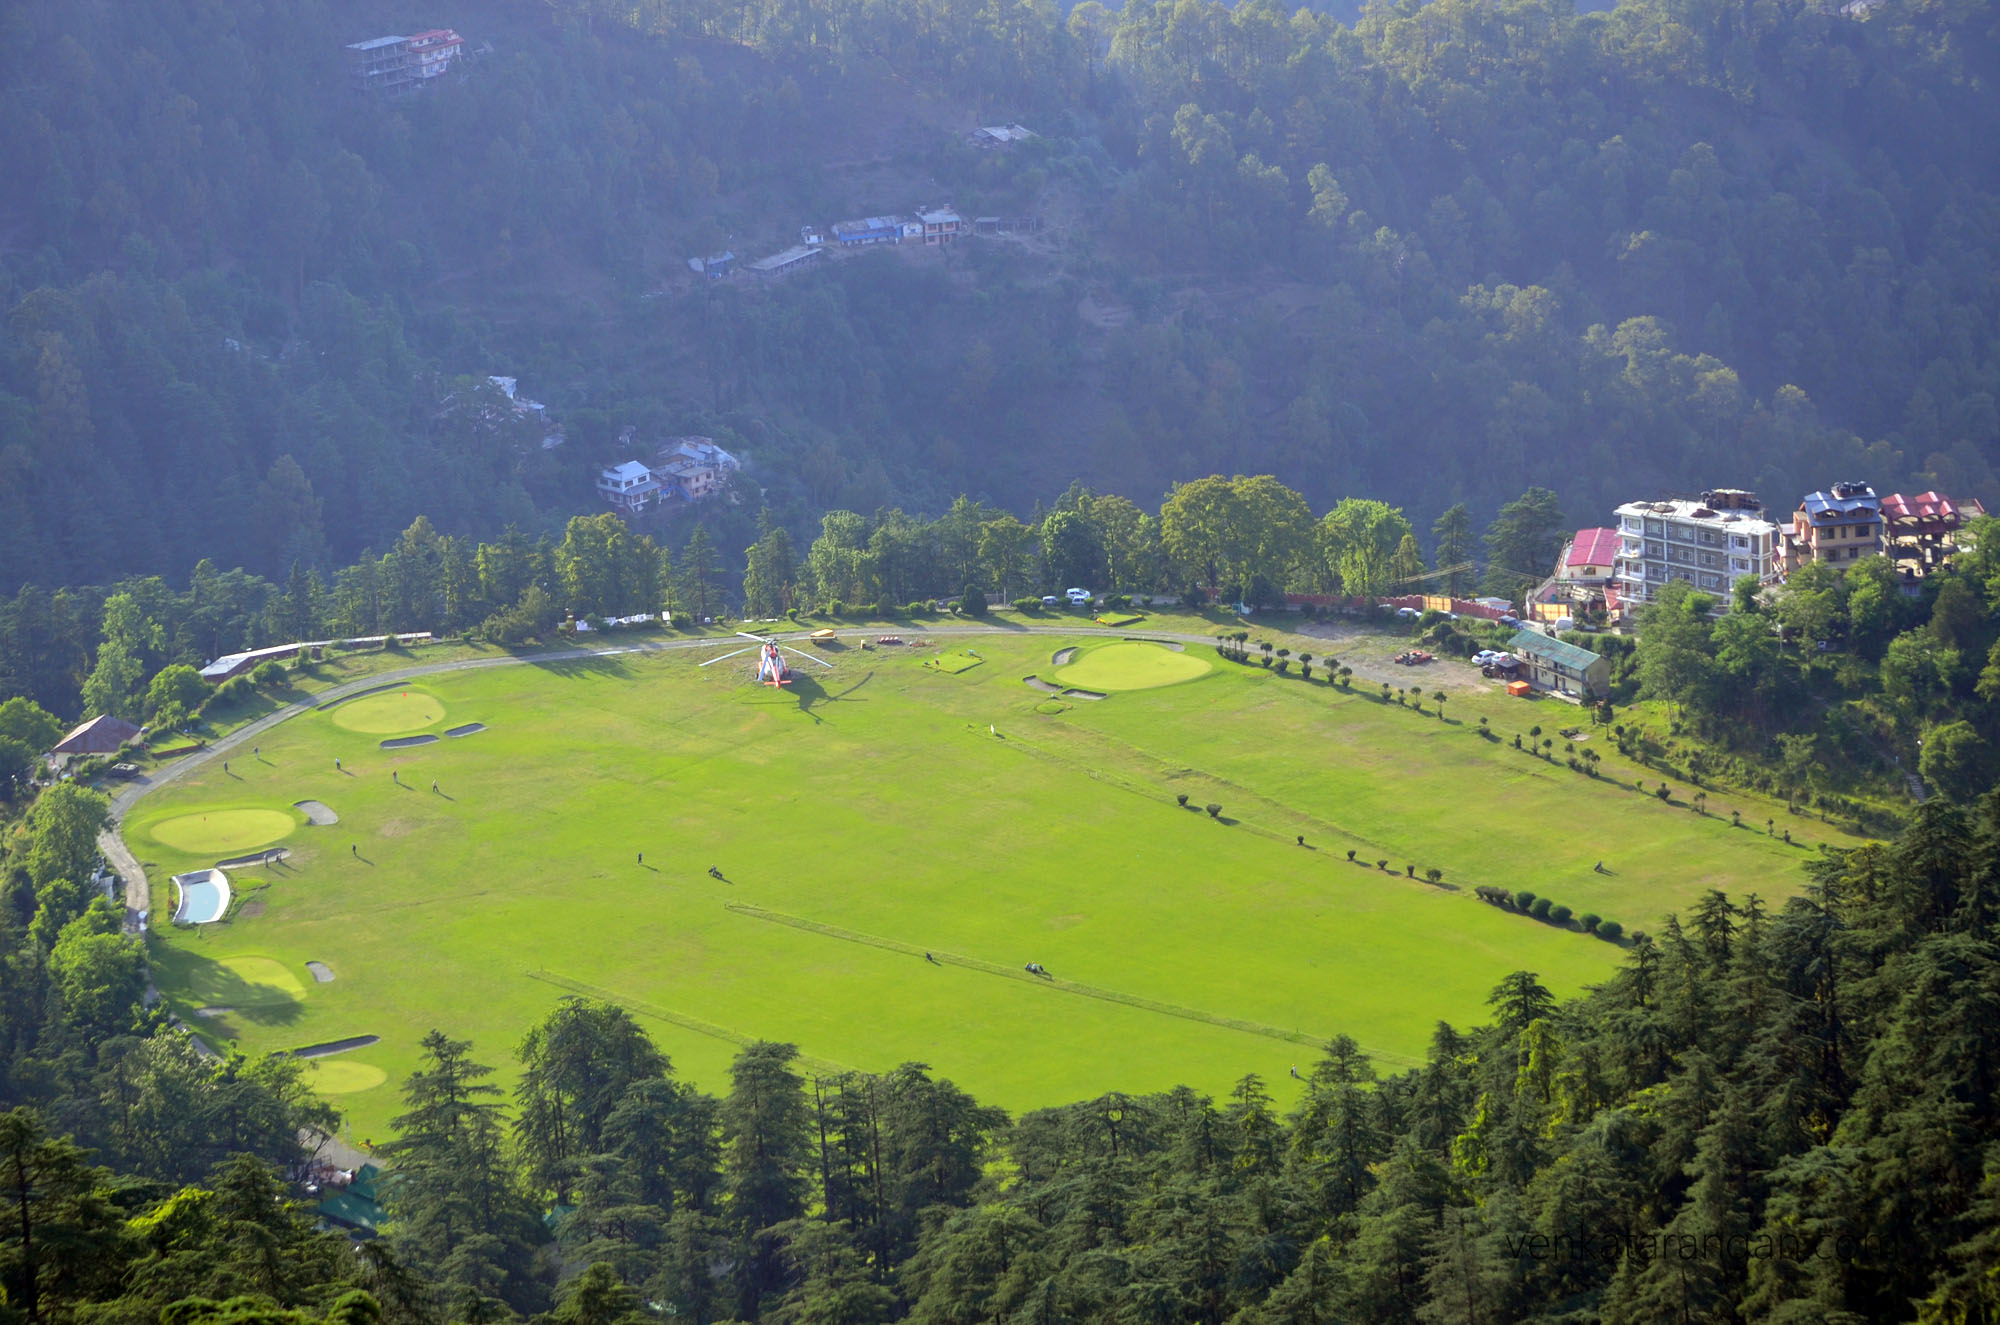 View of Annadale ground, belonging to Indian Army